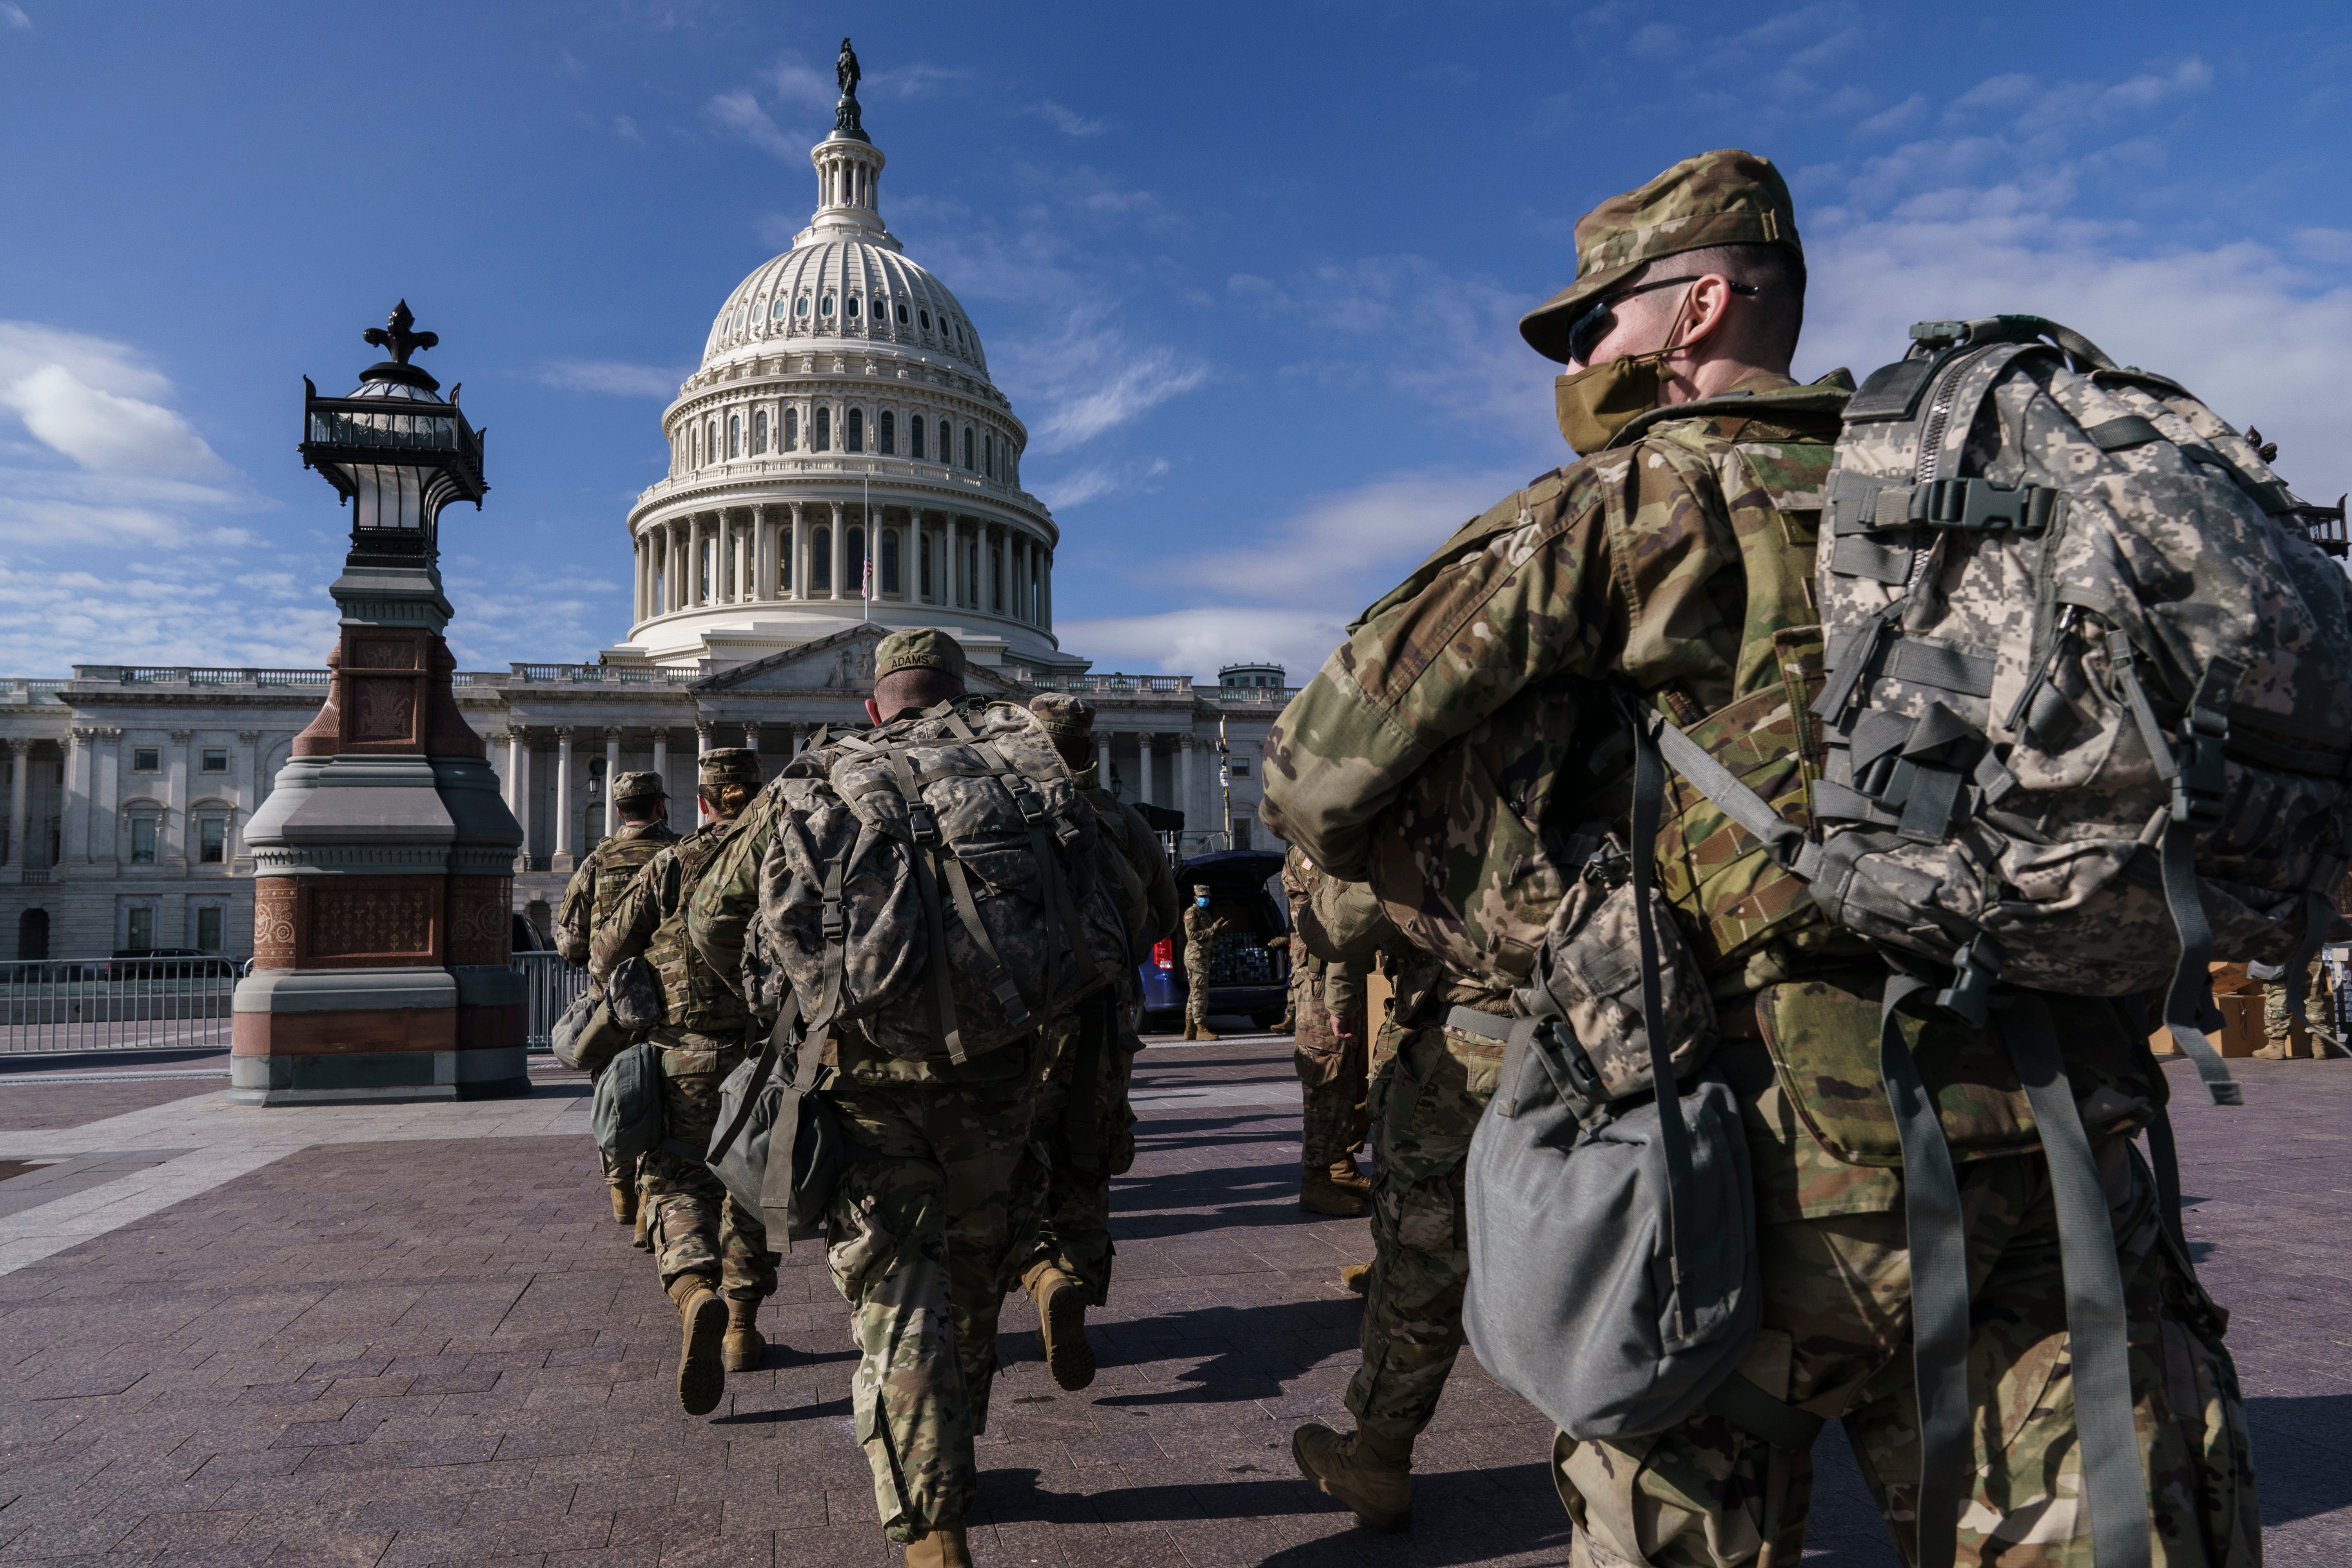 National Guard troops head home after helping secure Biden inauguration